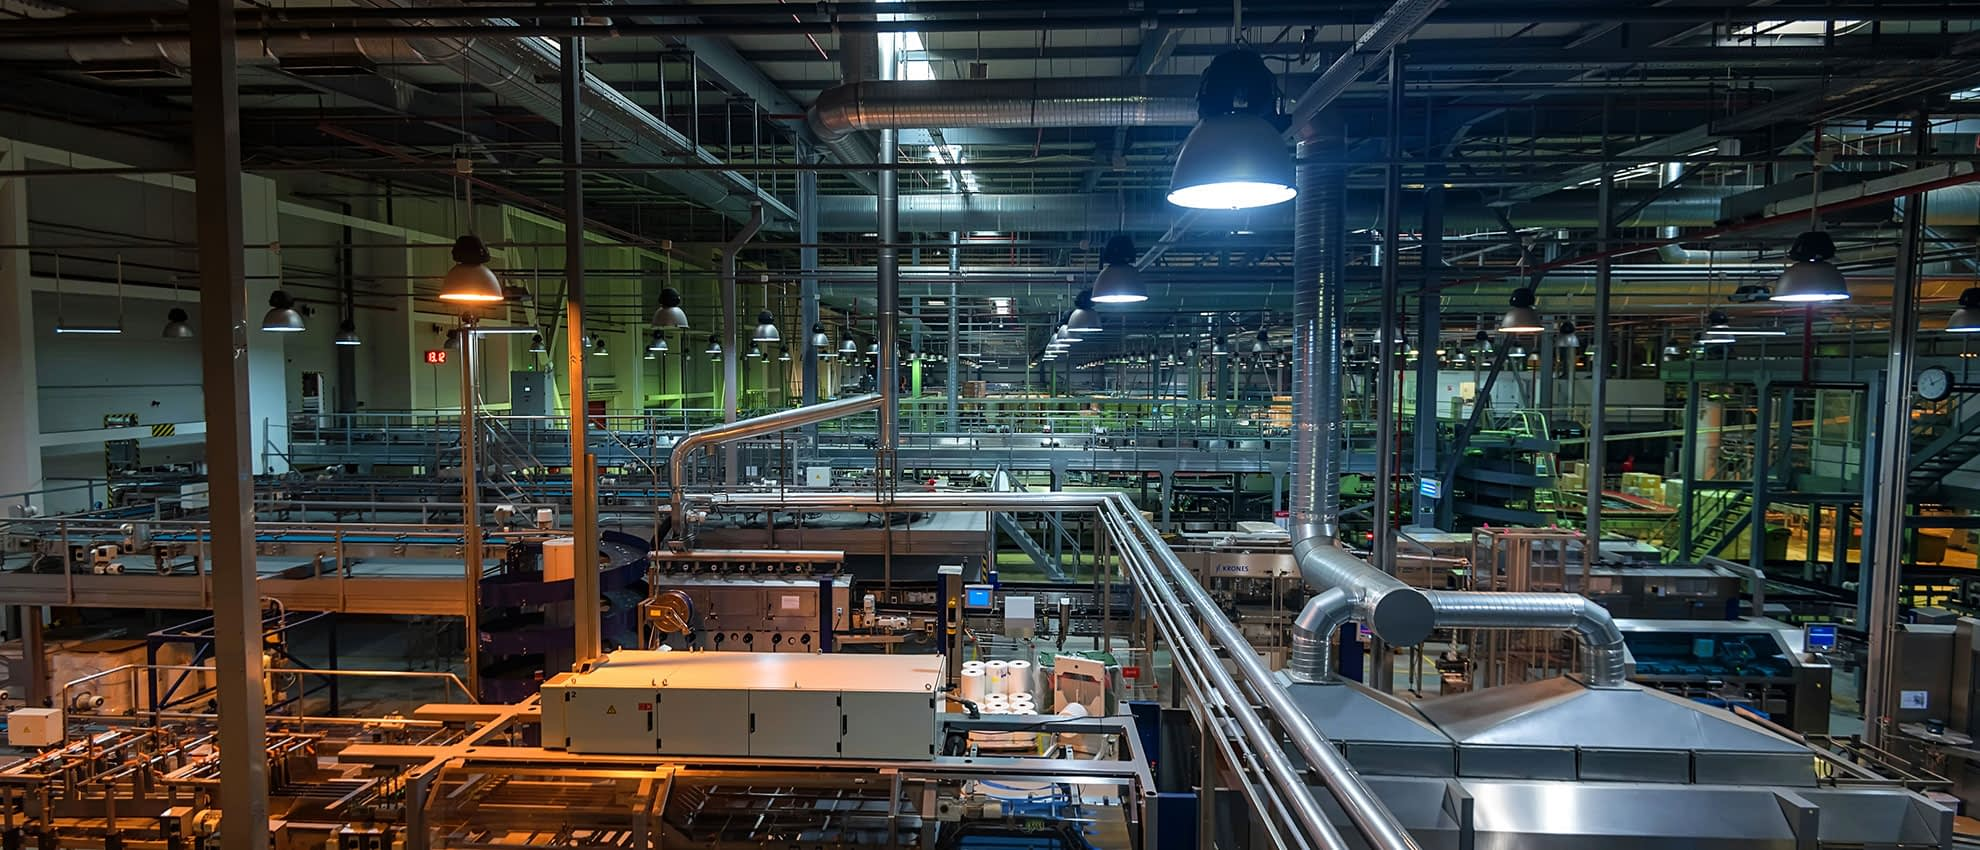 Industrial interior of  factory with tubes